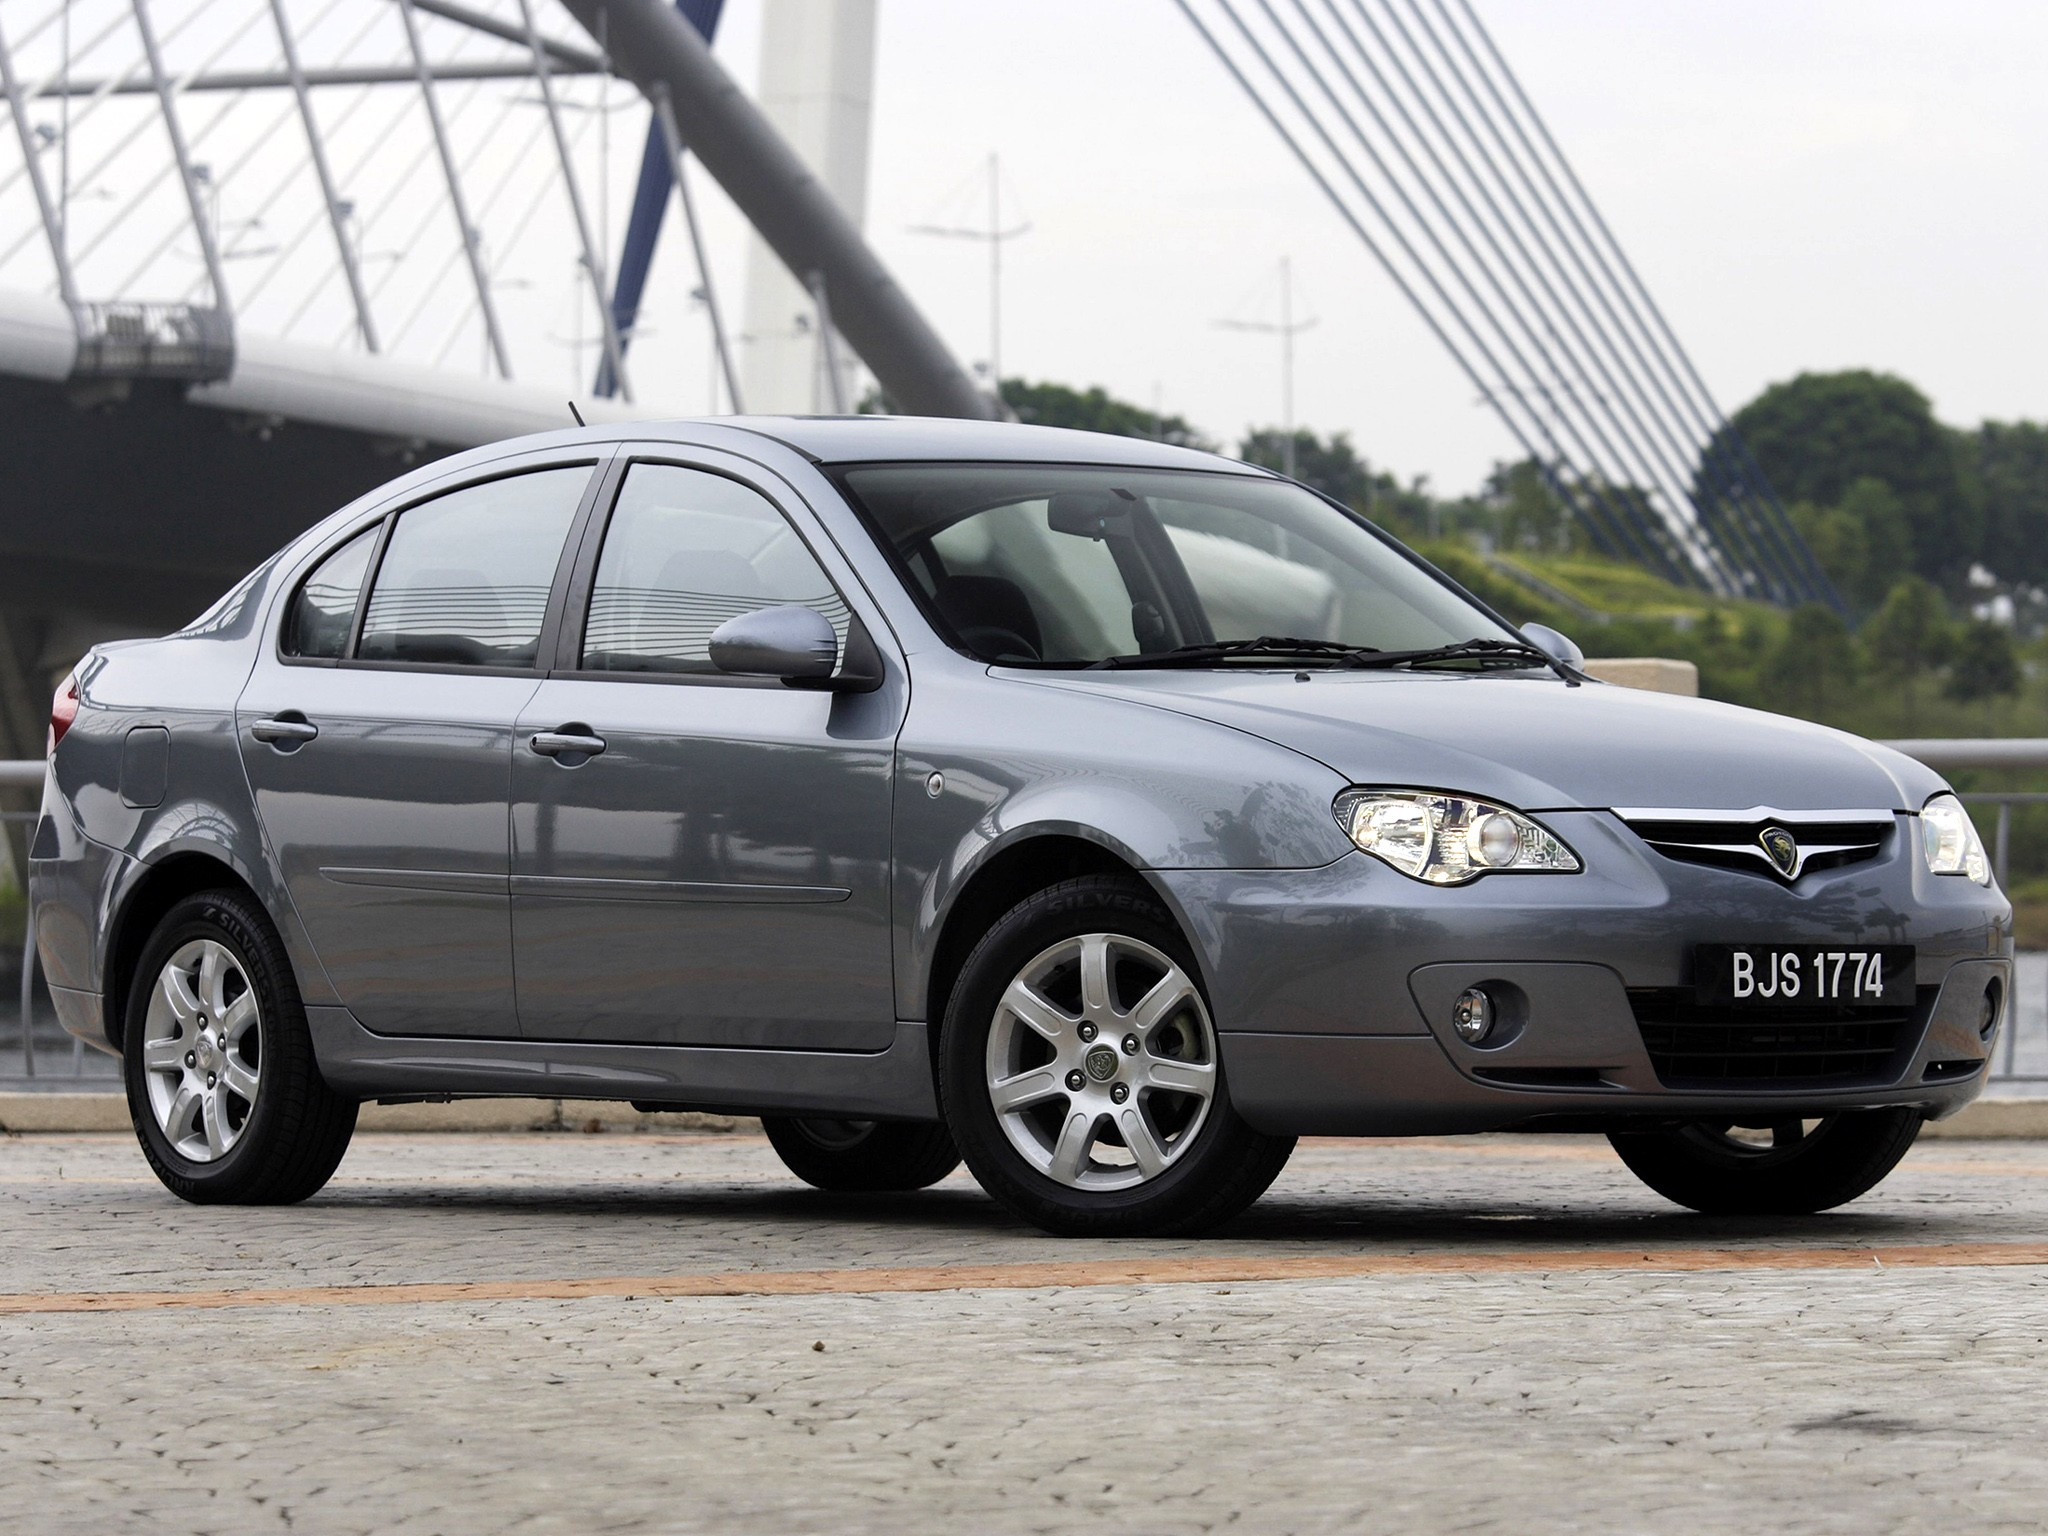 Proton Persona 400 фото авто